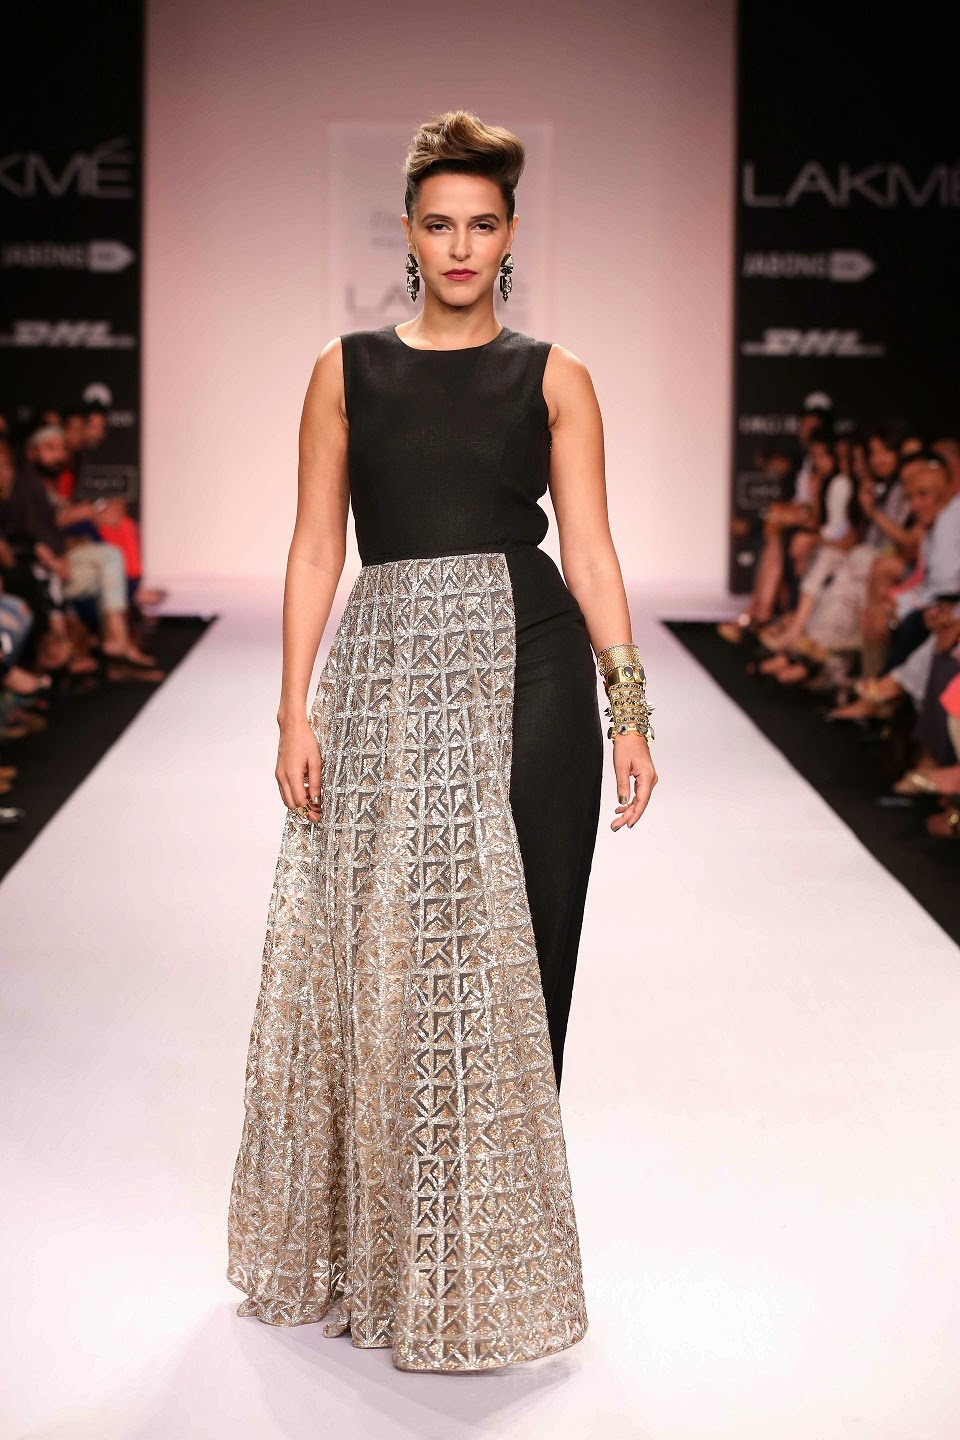 Lakme Fashion Week Plus Size Models Dipti